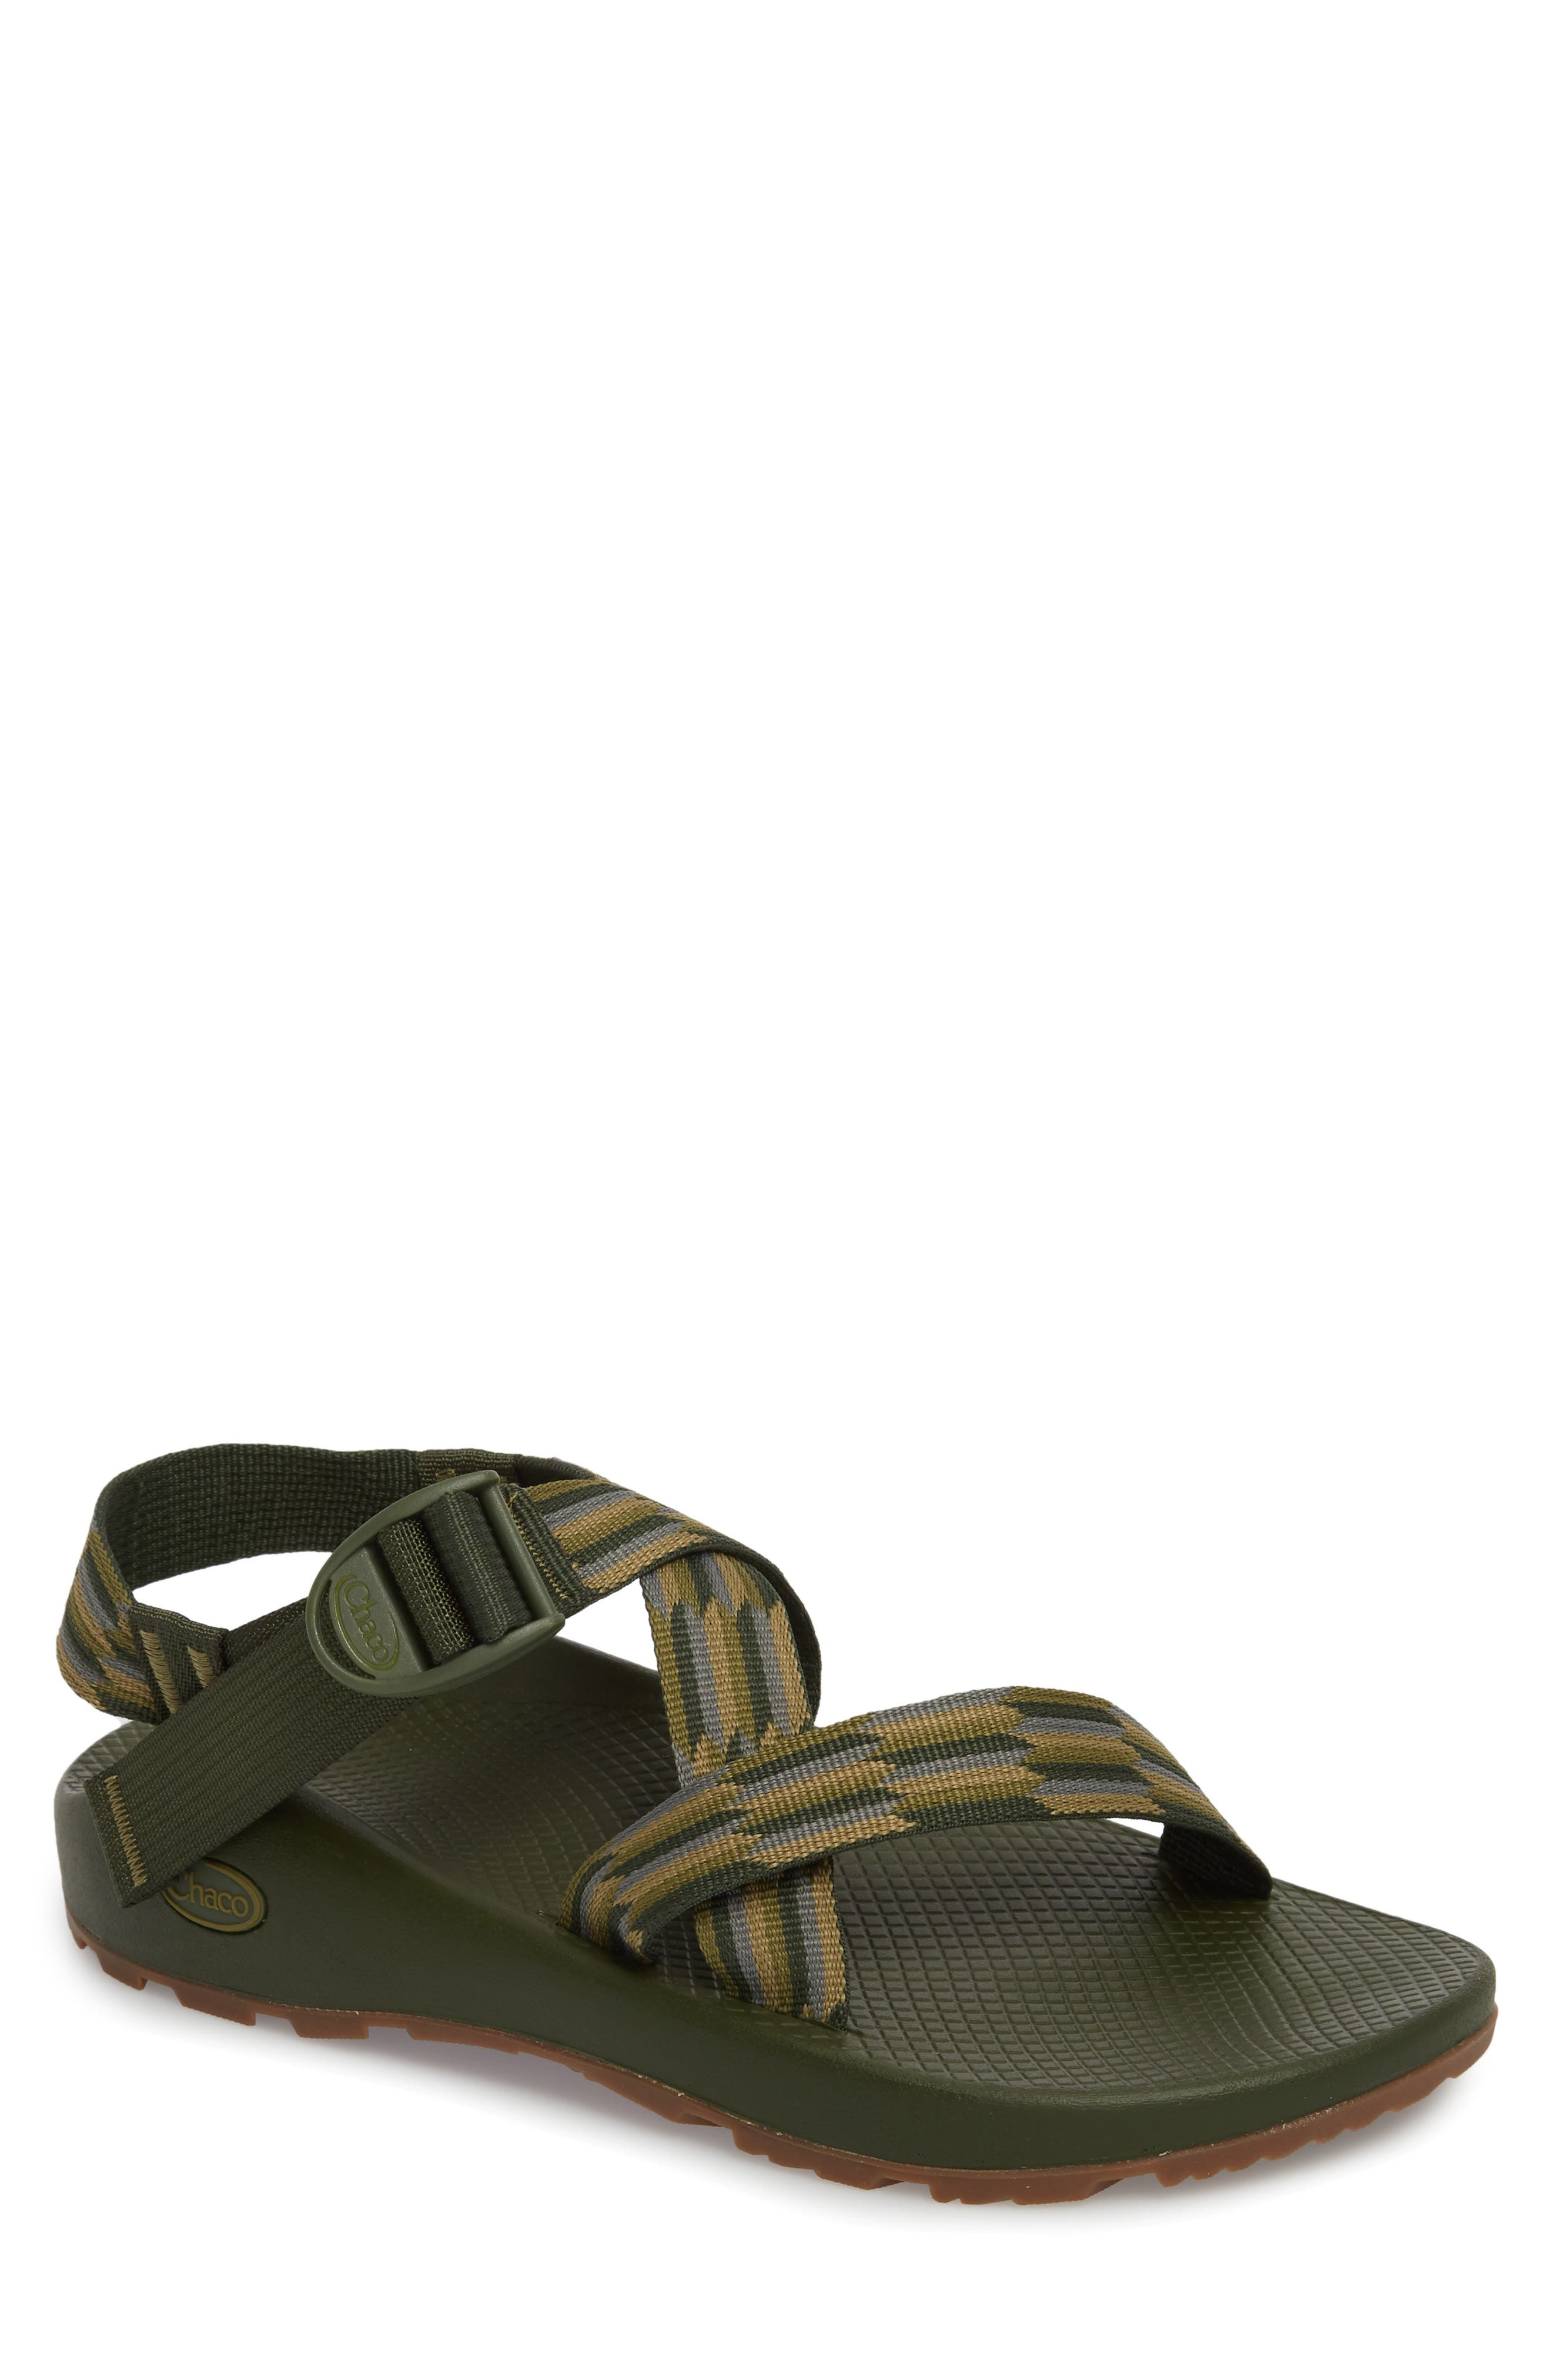 Alternate Image 1 Selected - Chaco Z/1 Classic Sport Sandal (Men)